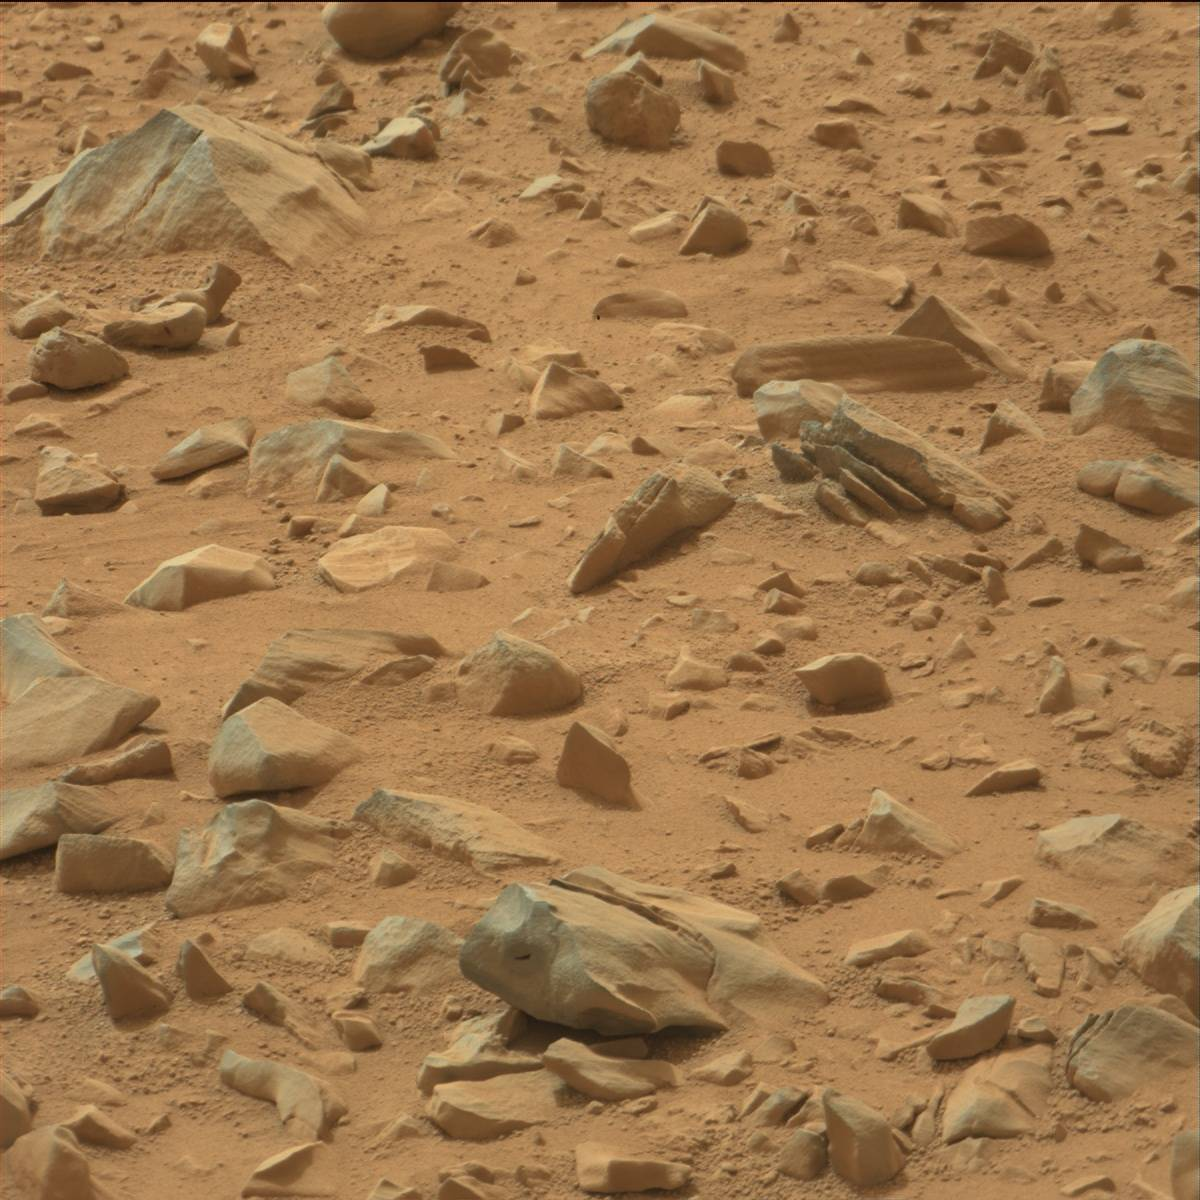 mars rover finds animal - photo #24